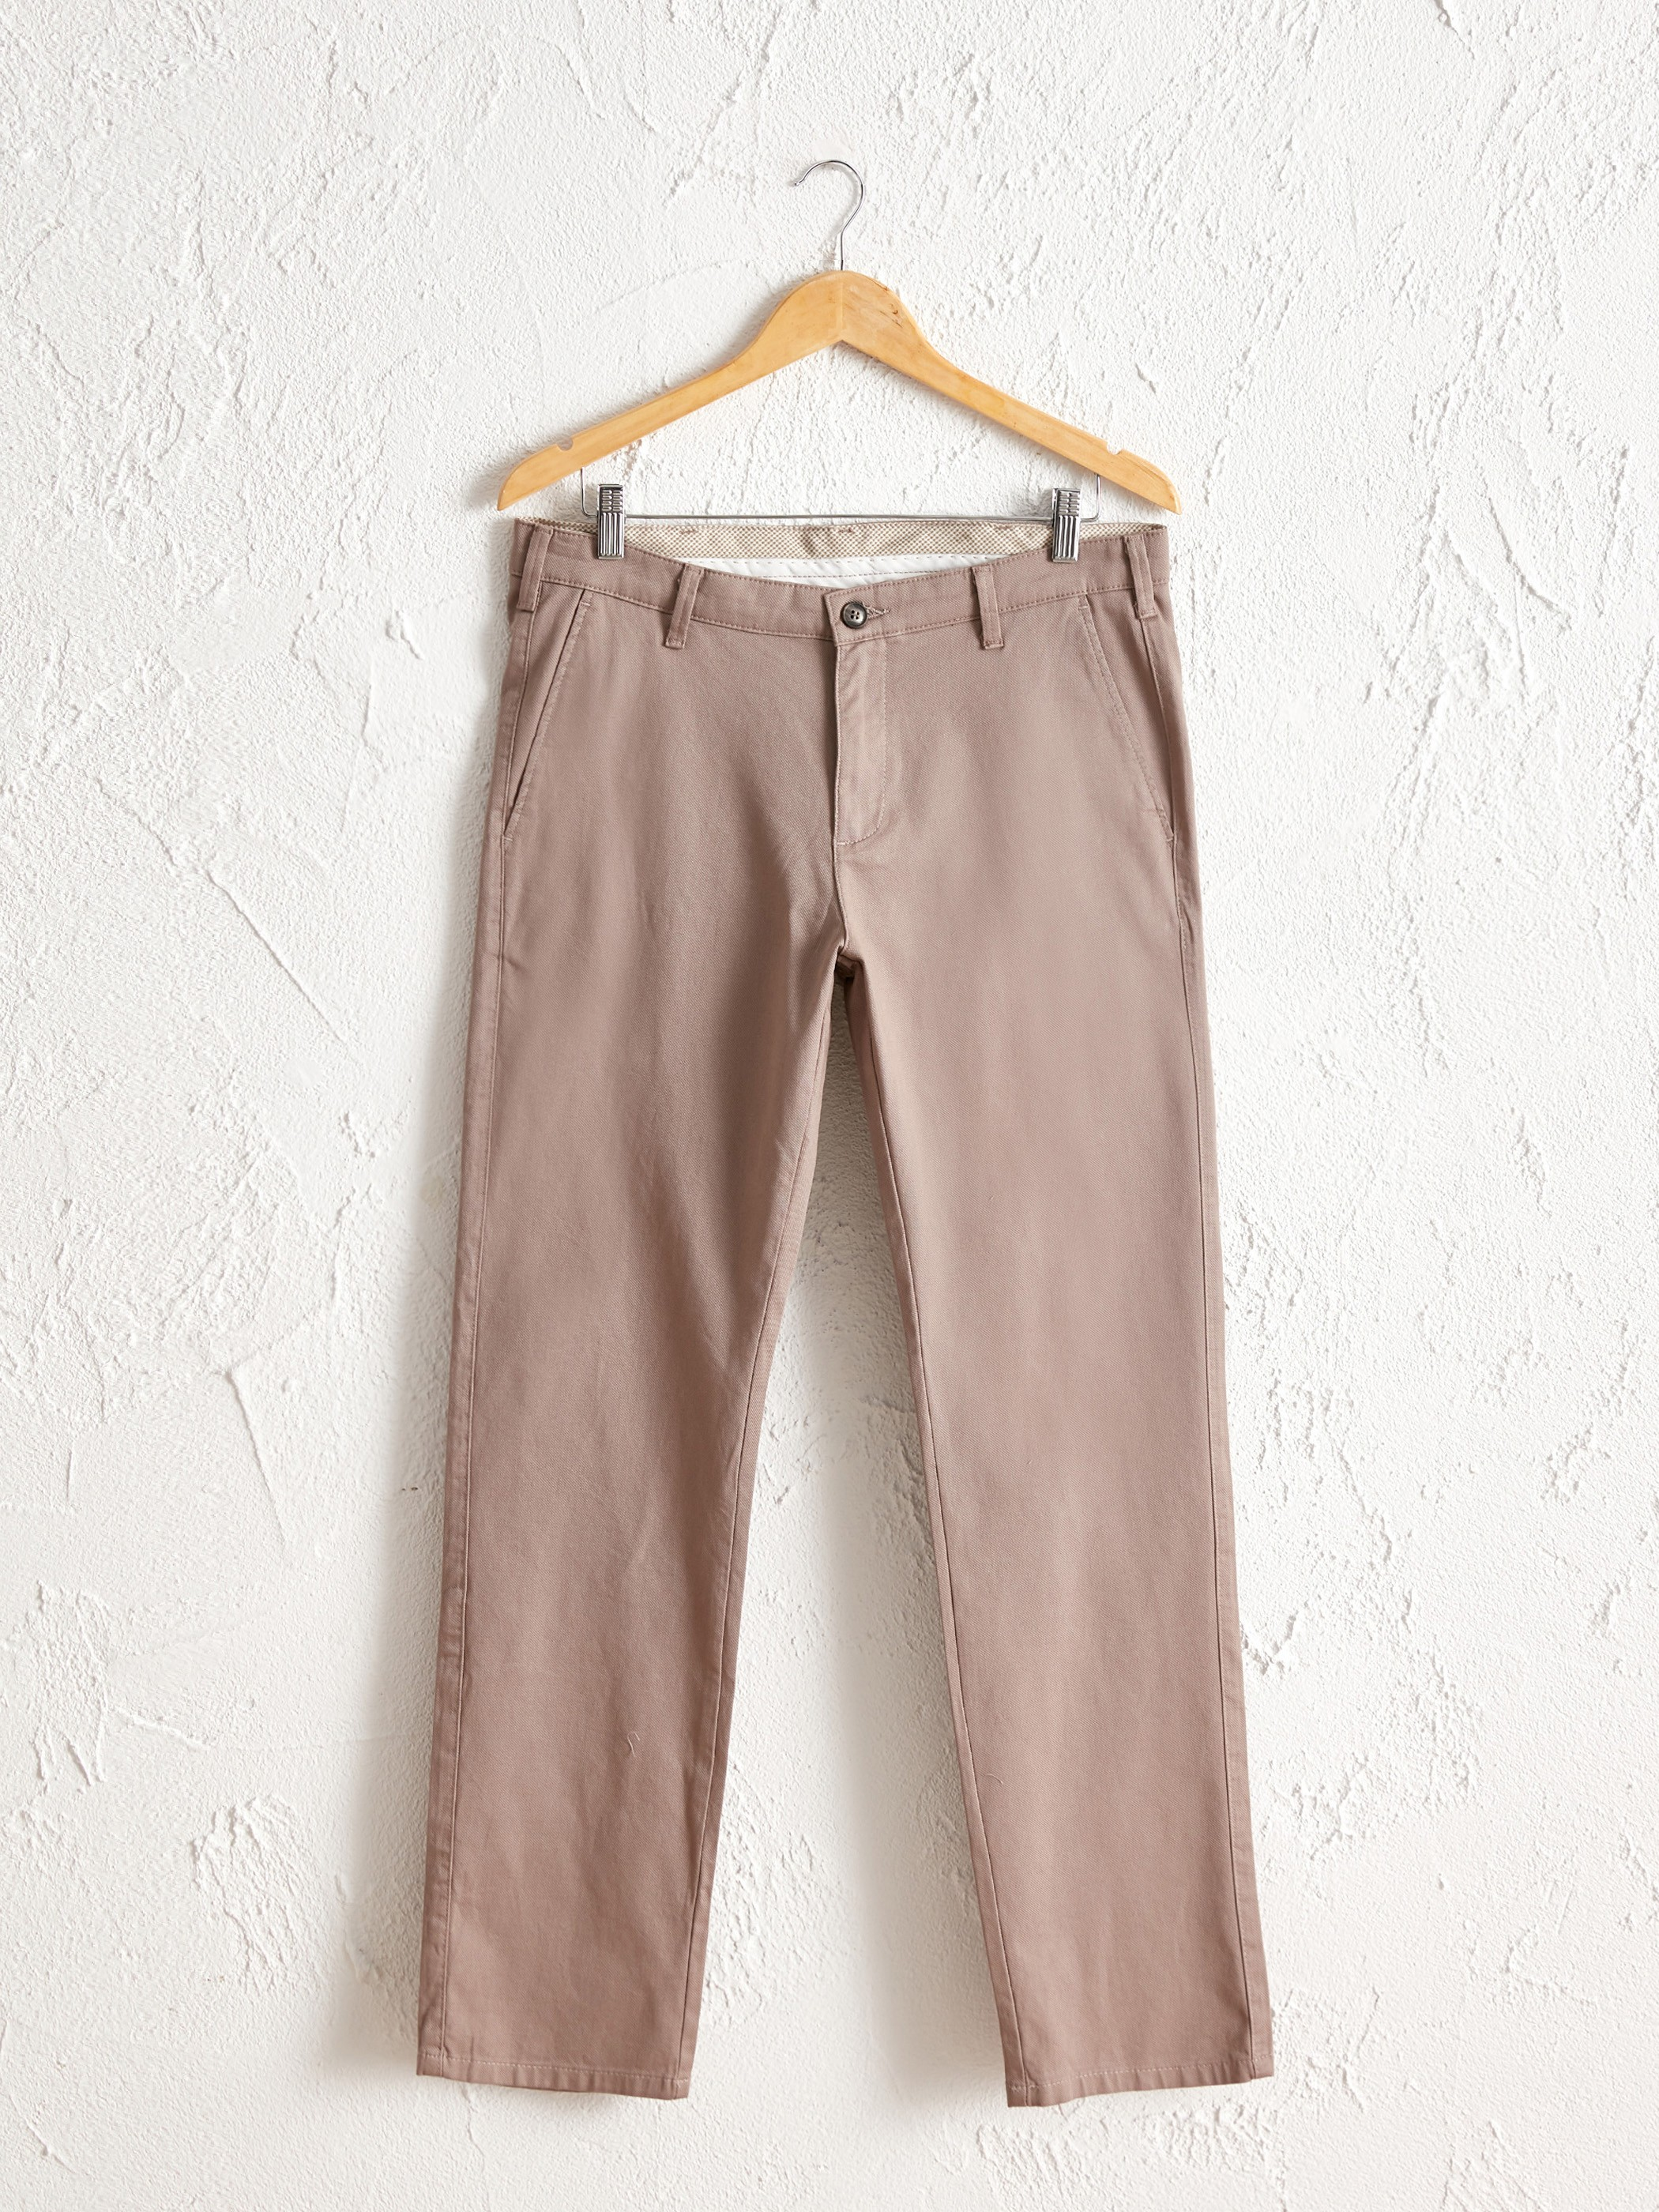 BEIGE - Normal Fit Chino Trousers - 0S1972Z8